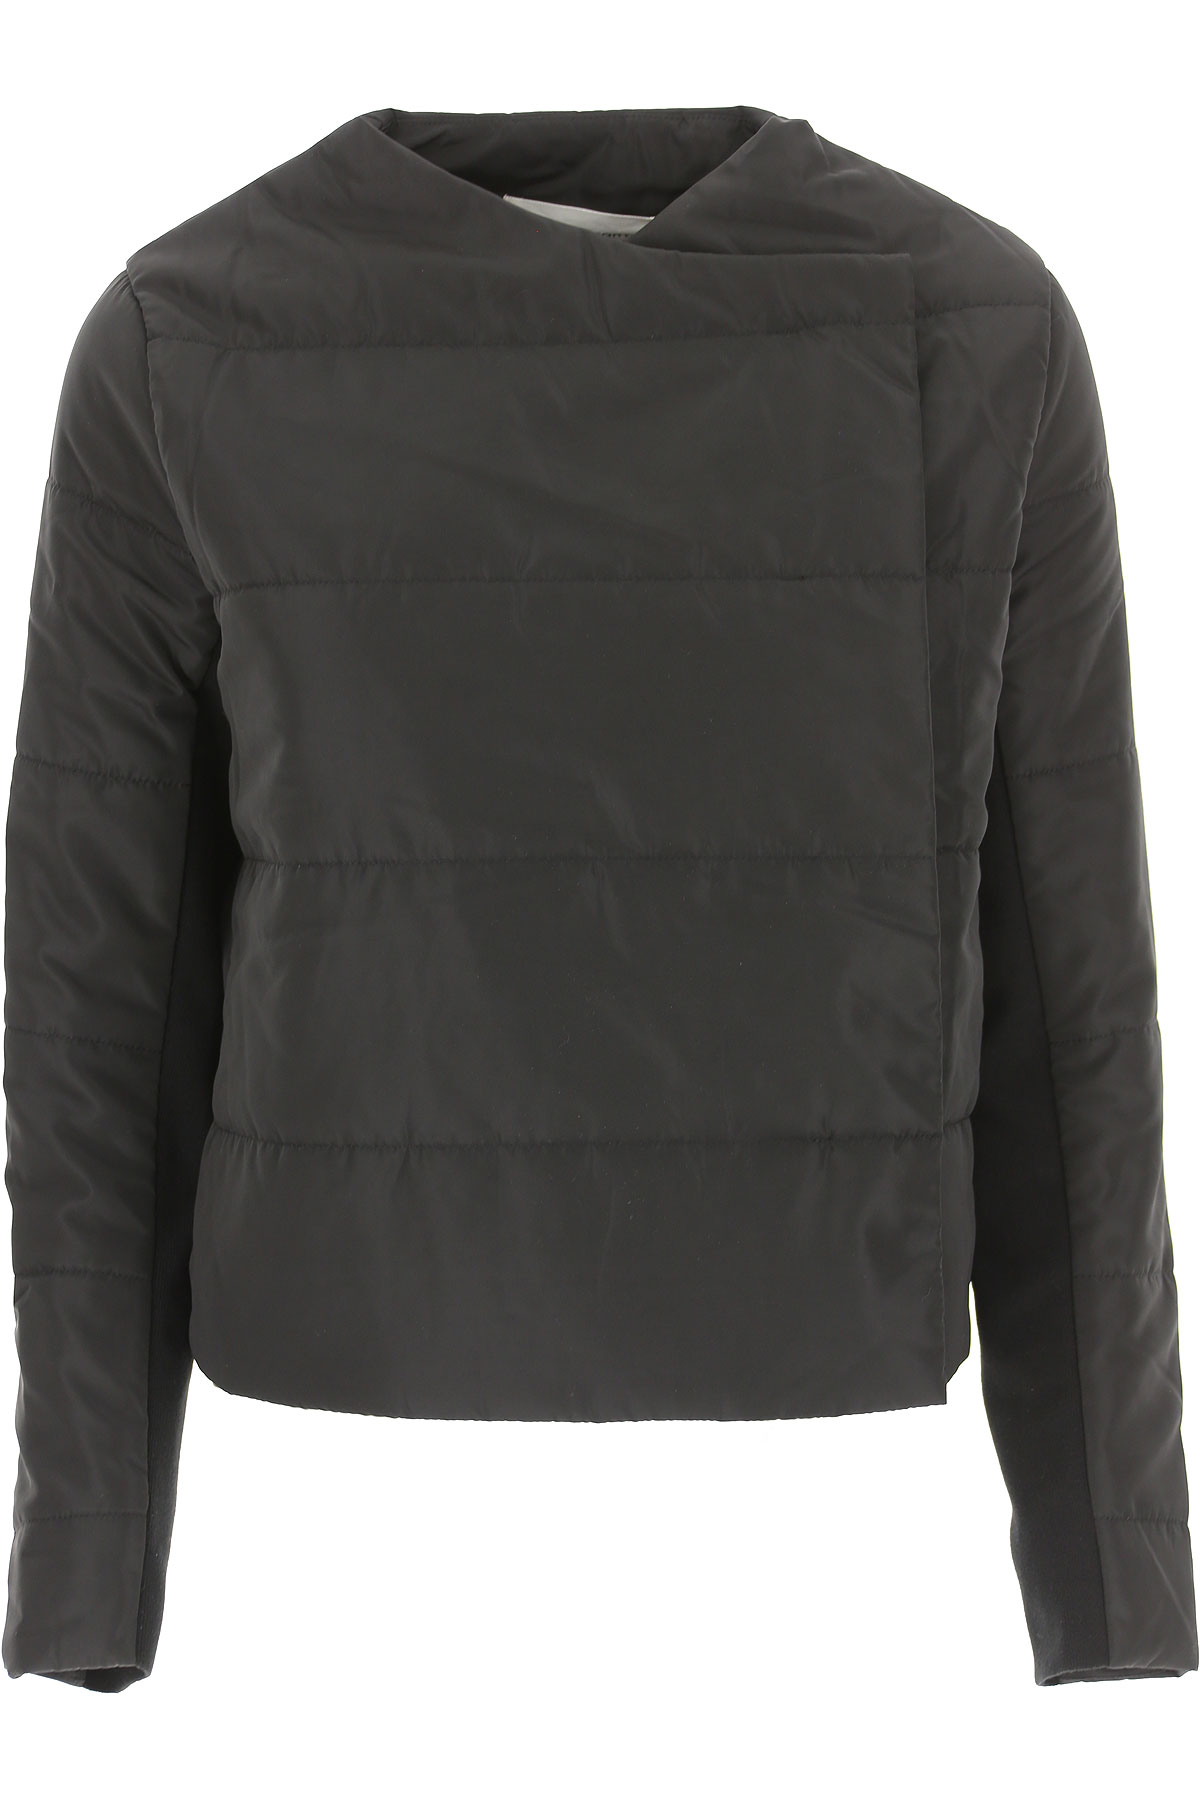 Image of Liviana Conti Jacket for Women, Black, polyester, 2017, 2 4 6